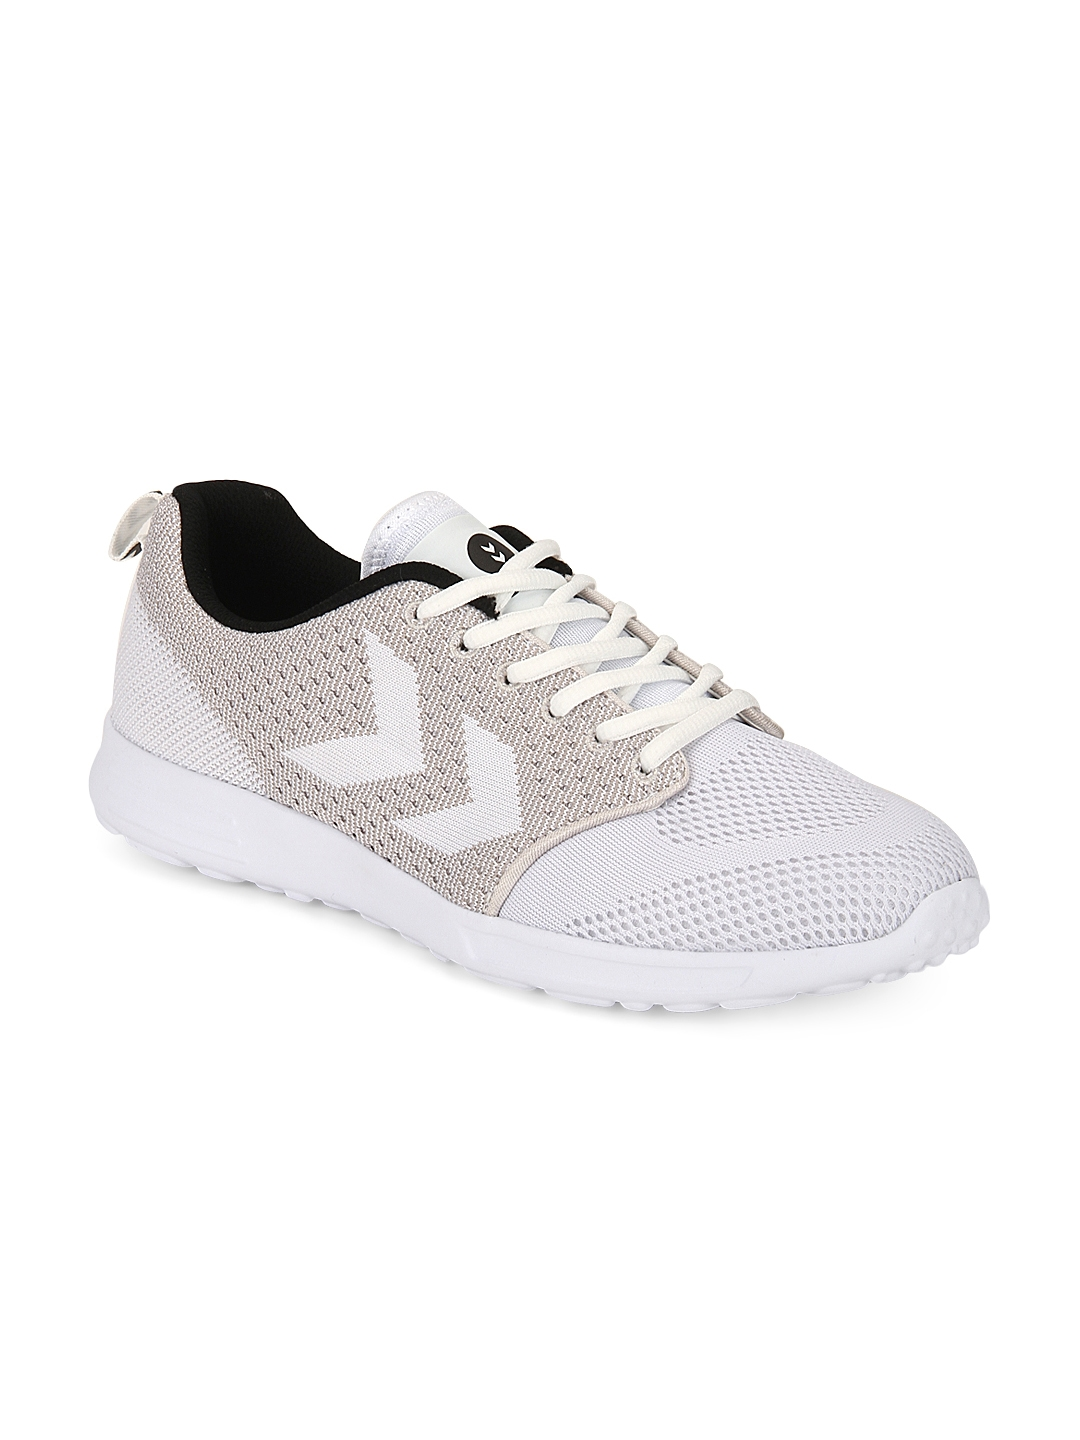 Unisex Shoes Sports Zeroknit Ii Hummel White For Buy 7pHUfq8wRz